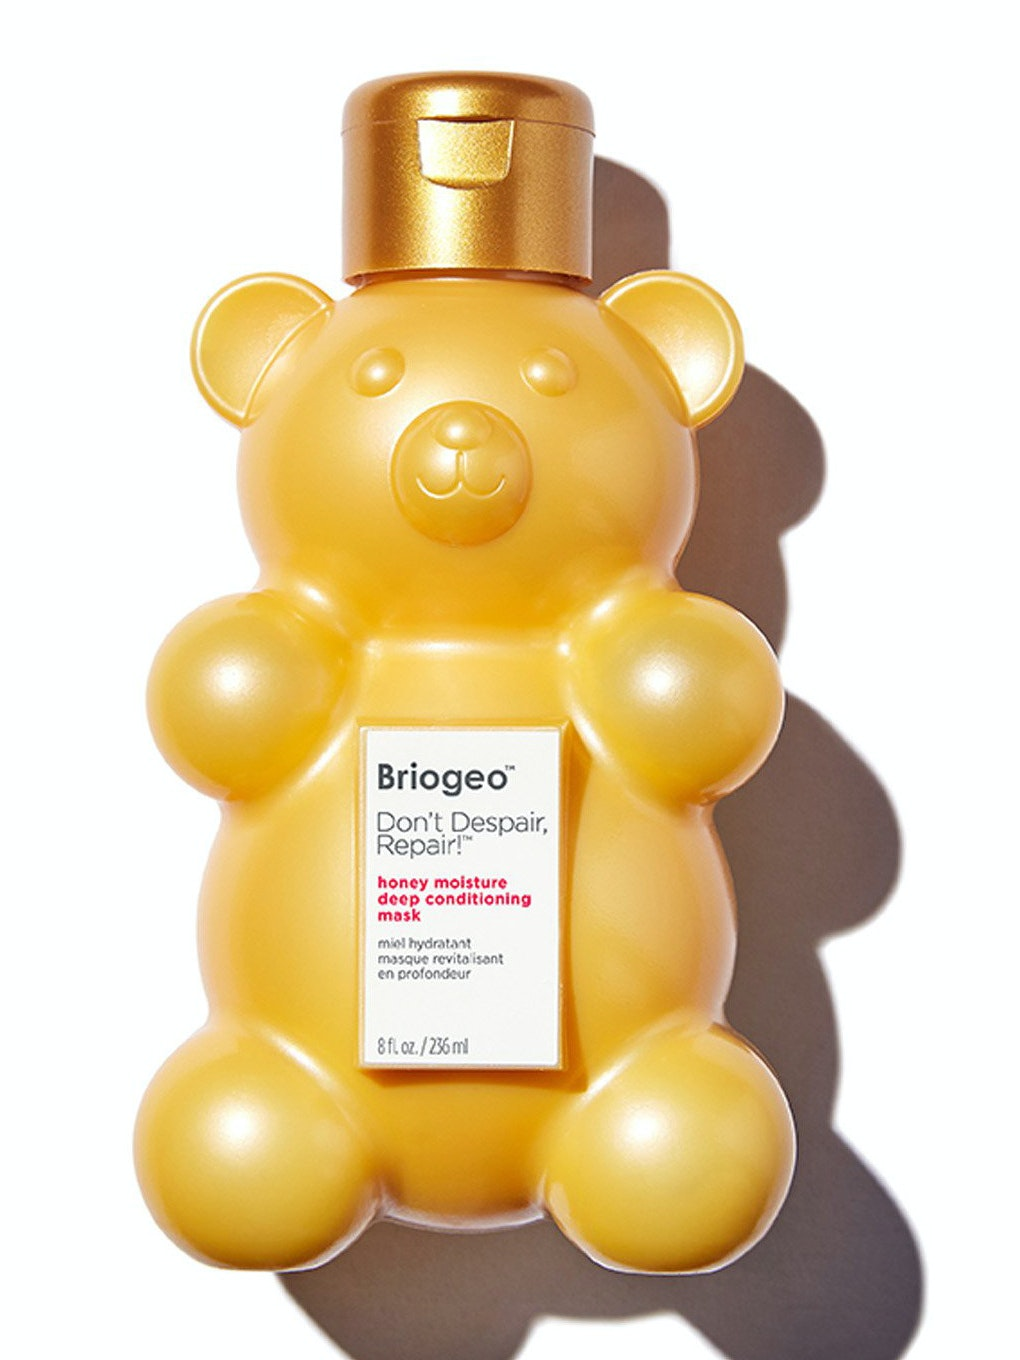 Briogeo Don't Despair, Repair! Honey Moisture Deep Conditioning Mask